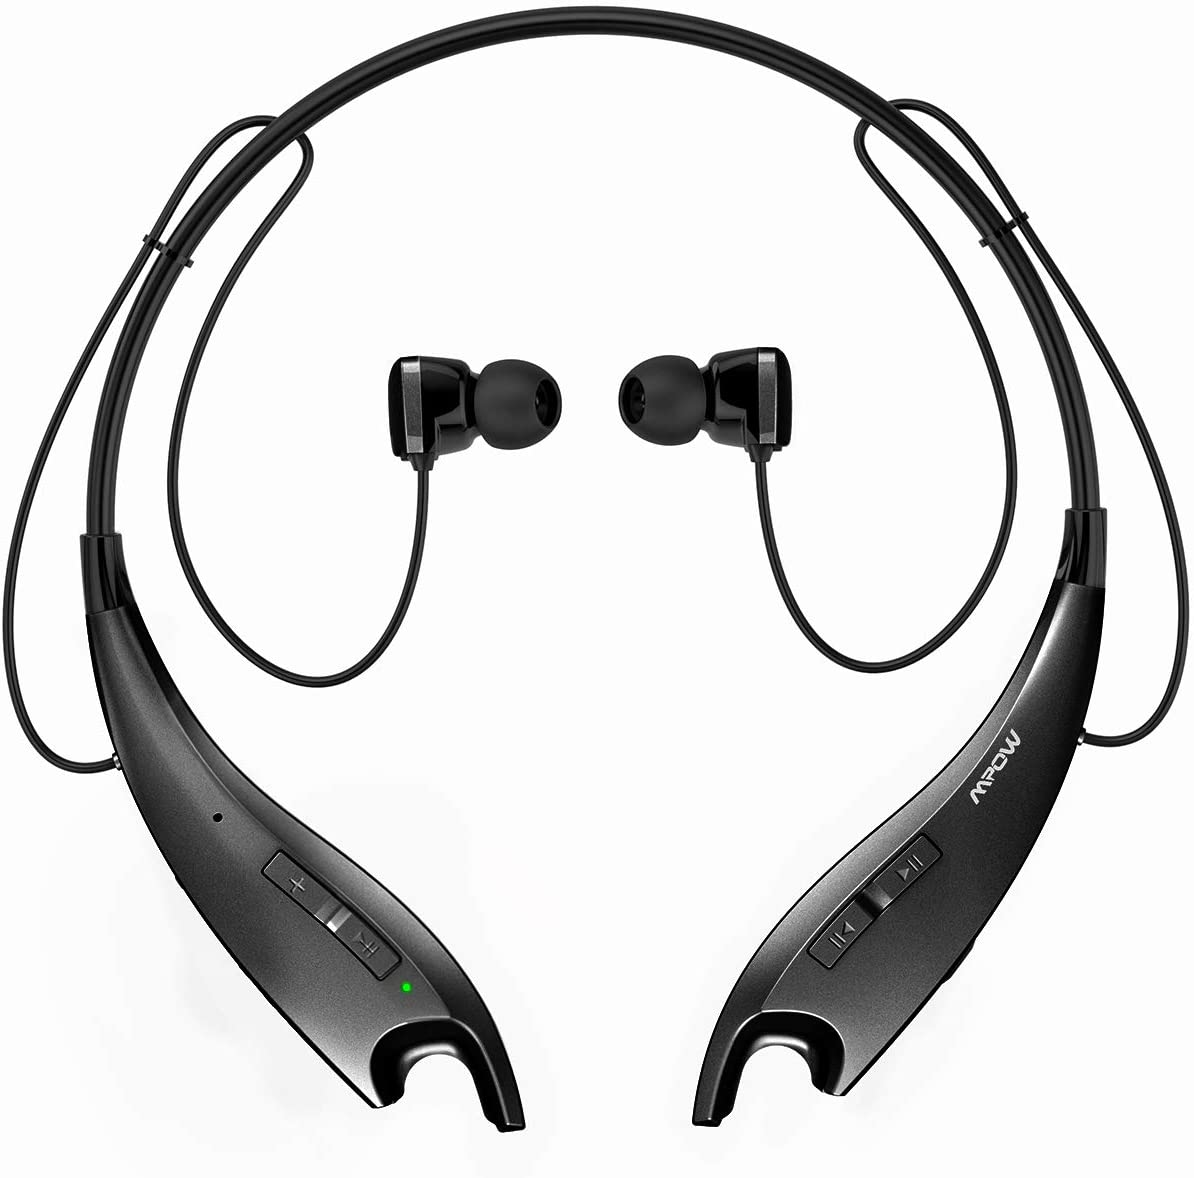 Mpow Jaws Upgraded Gen-3 Bluetooth Headphones for Work from Home, Wireless Neckband Headphones 13H Playtime, Bluetooth Headset W Call Vibrate CVC 6.0 Noise Cancelling Mic, Magnetic Earbuds, Black